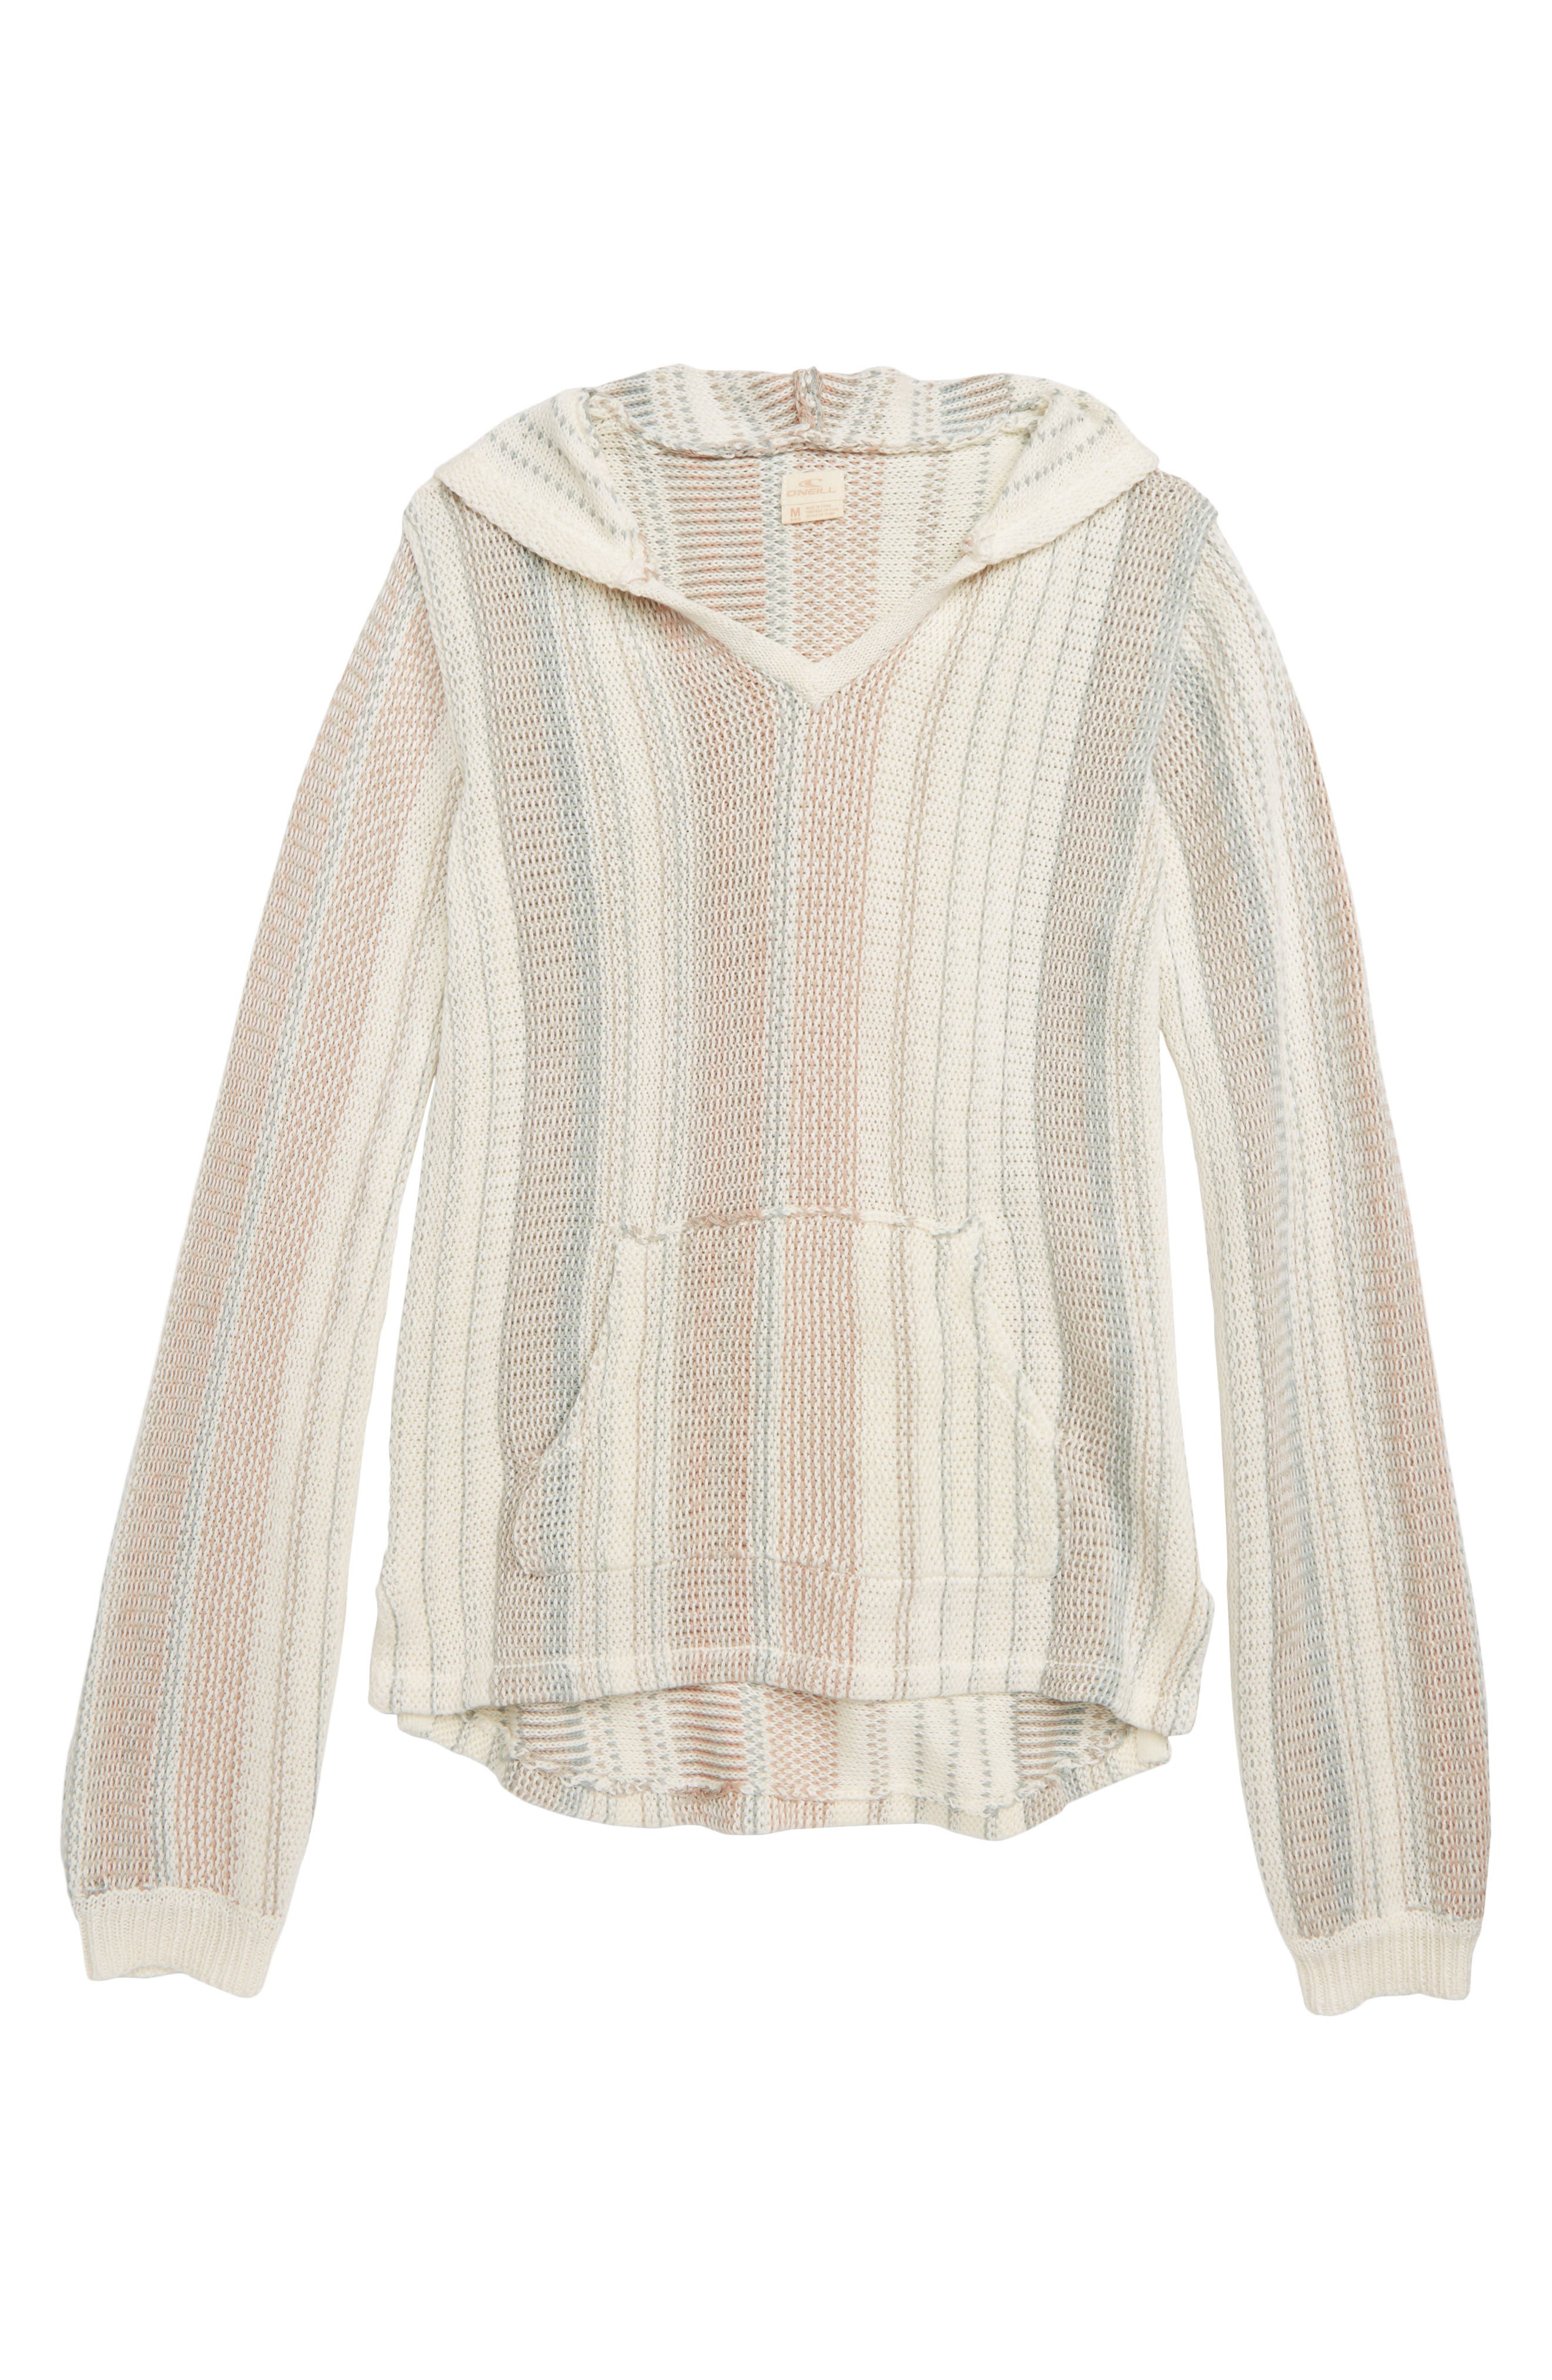 Girls ONeill Heated Hooded Sweater Size L (1214)  Ivory